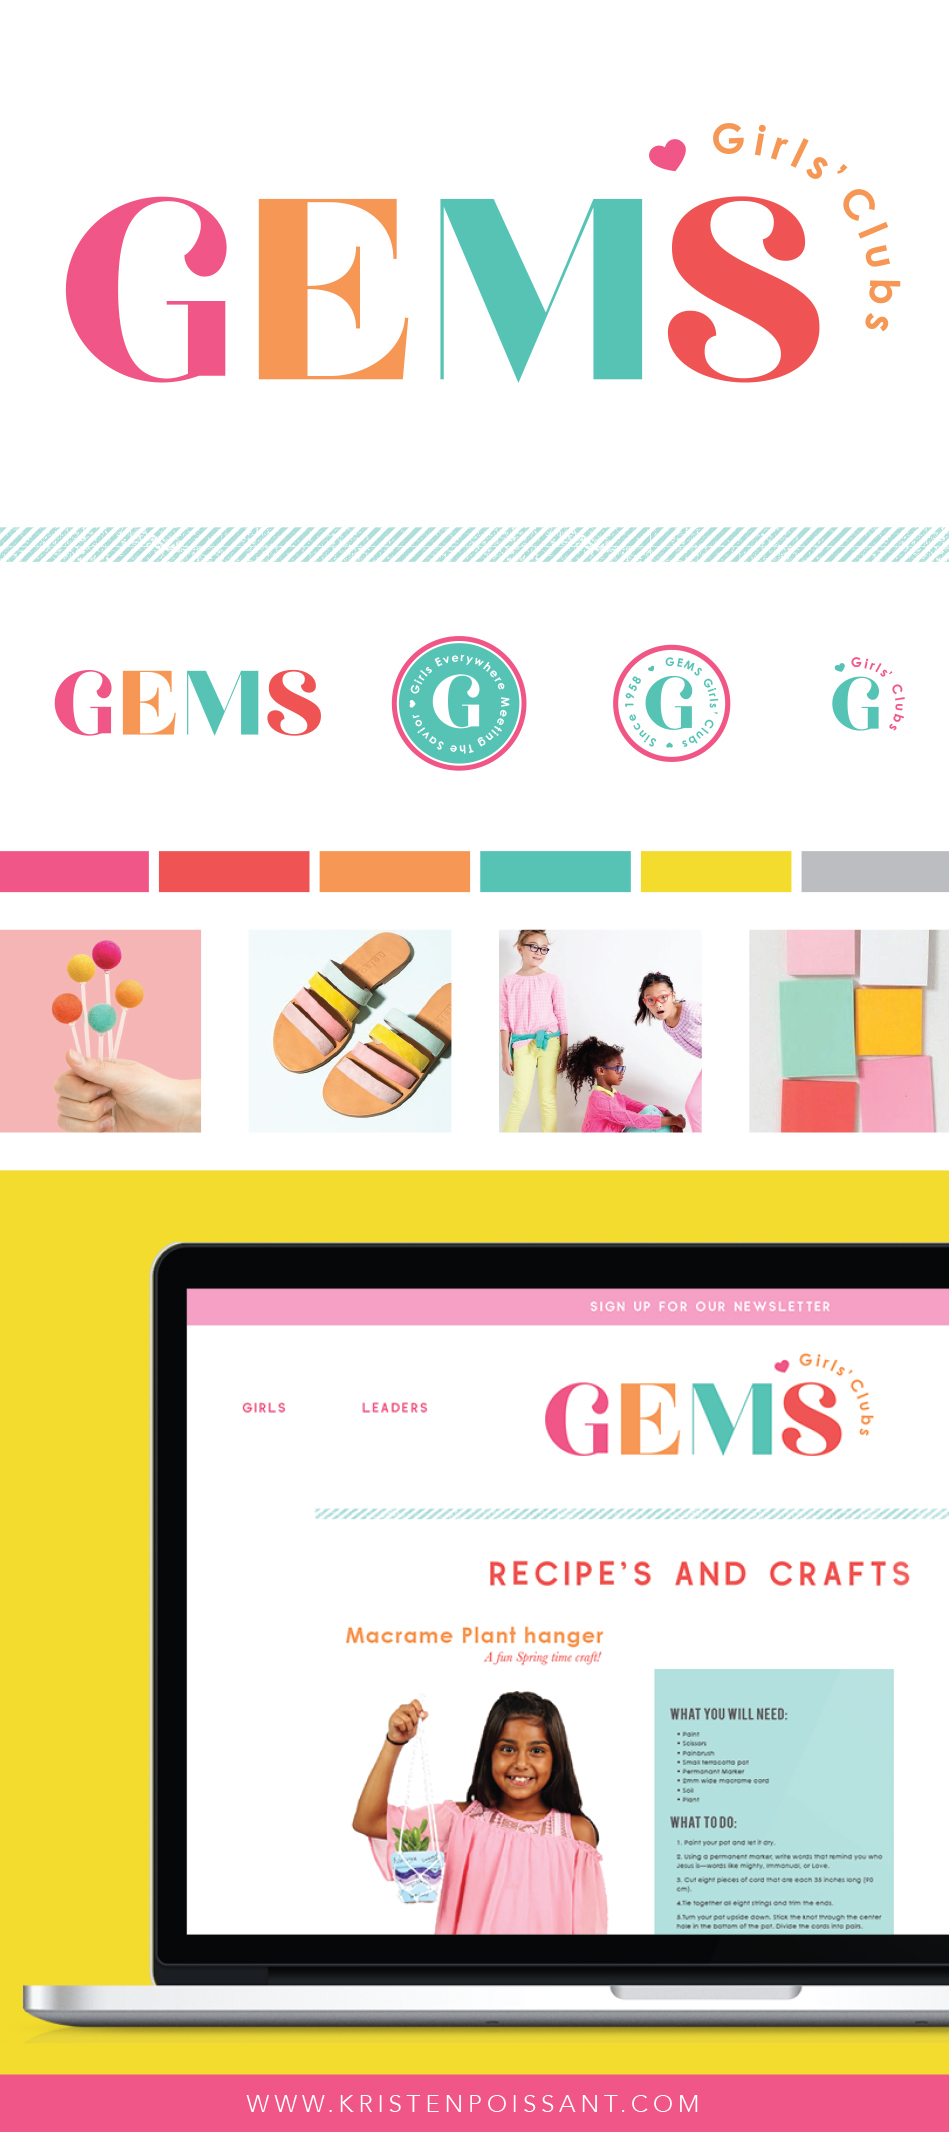 Branding-for-gems-girls-club-by-new-york-brand-and-logo-designer-kristen-poissant.jpg